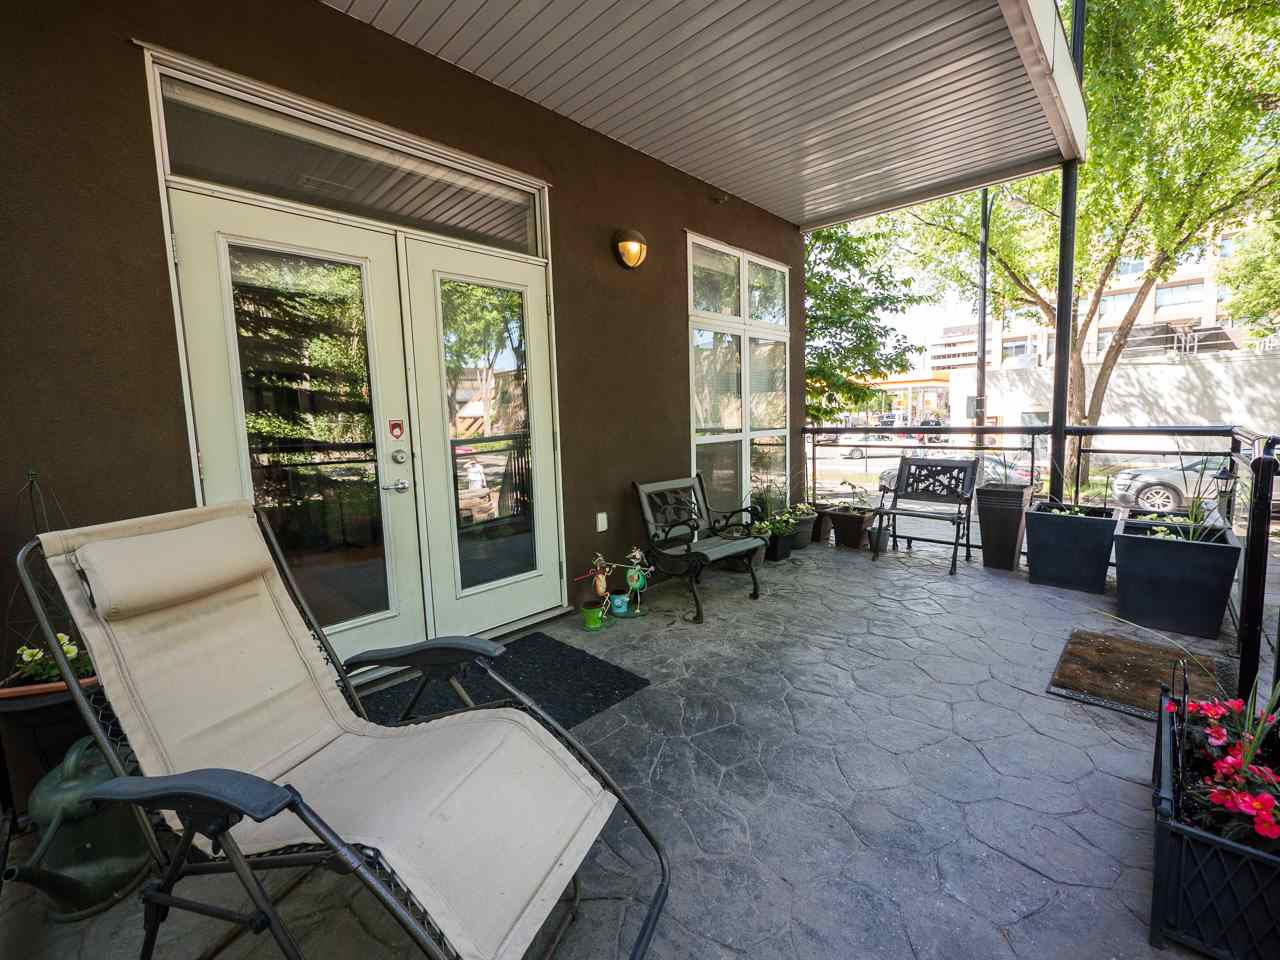 Main Photo: 141 10403 122 Street in Edmonton: Zone 07 Condo for sale : MLS(r) # E4067377